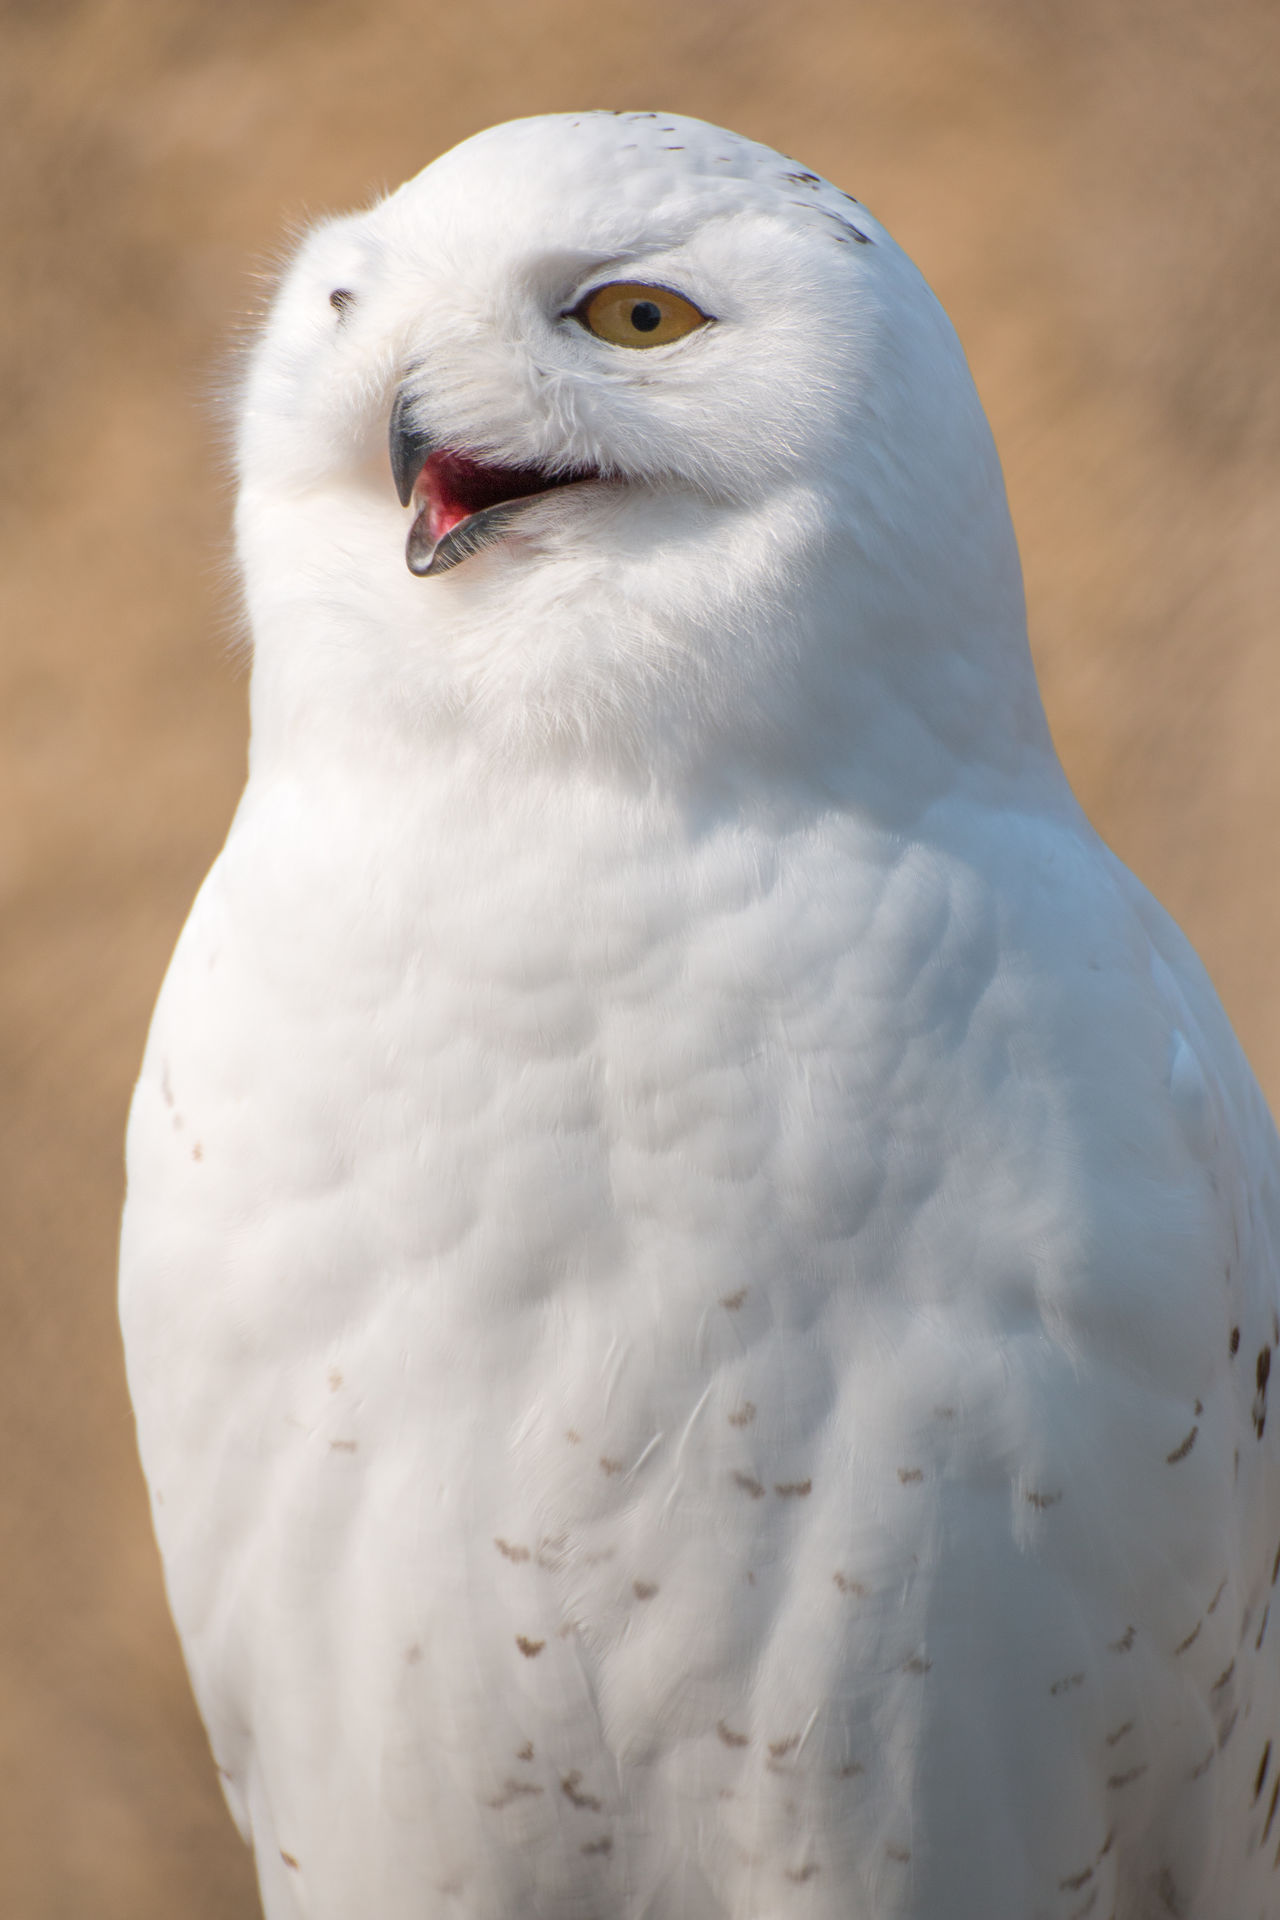 Shouting Owl on a close up portrait Animal Themes Animal Wildlife Animals In The Wild Beak Bird Bird Of Prey Close-up Day Focus On Foreground Nature No People One Animal Outdoors Owl Owl Art Owl Eyes Snow White Color